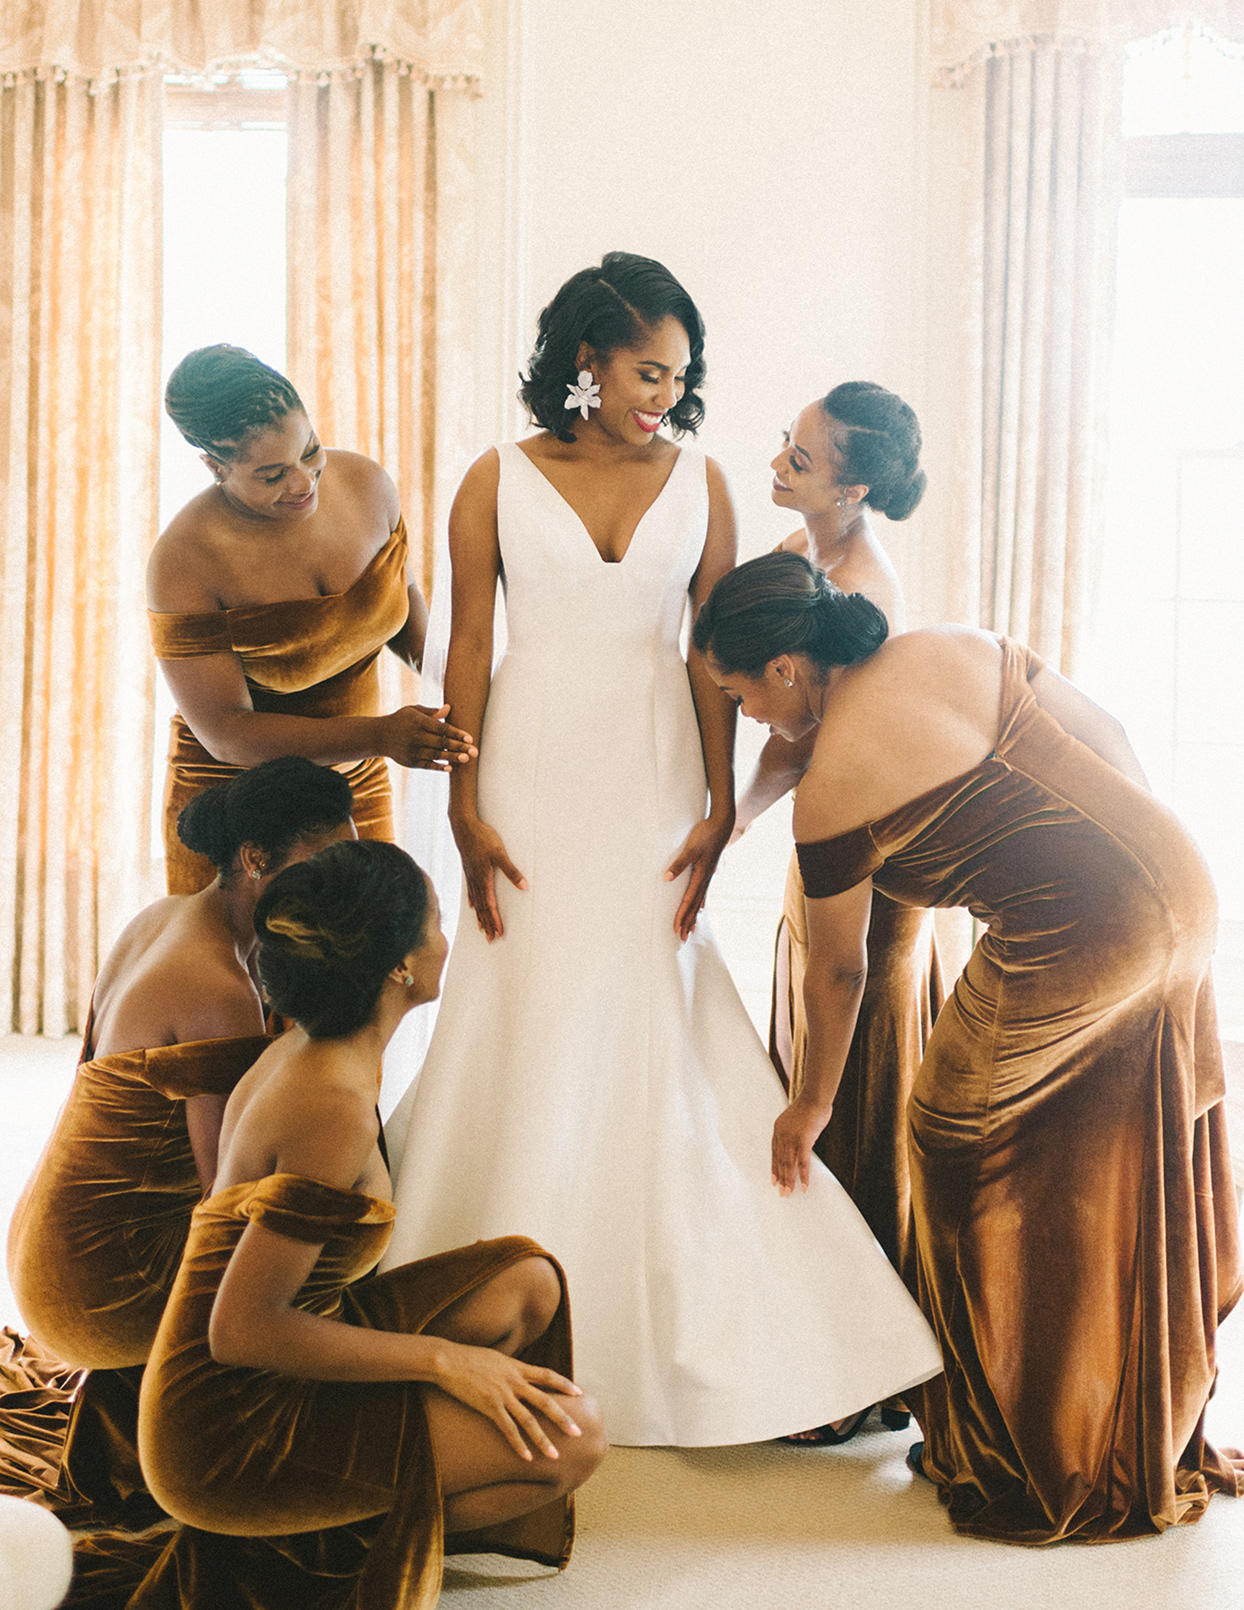 ericka meechaeyl wedding bride getting ready with maids